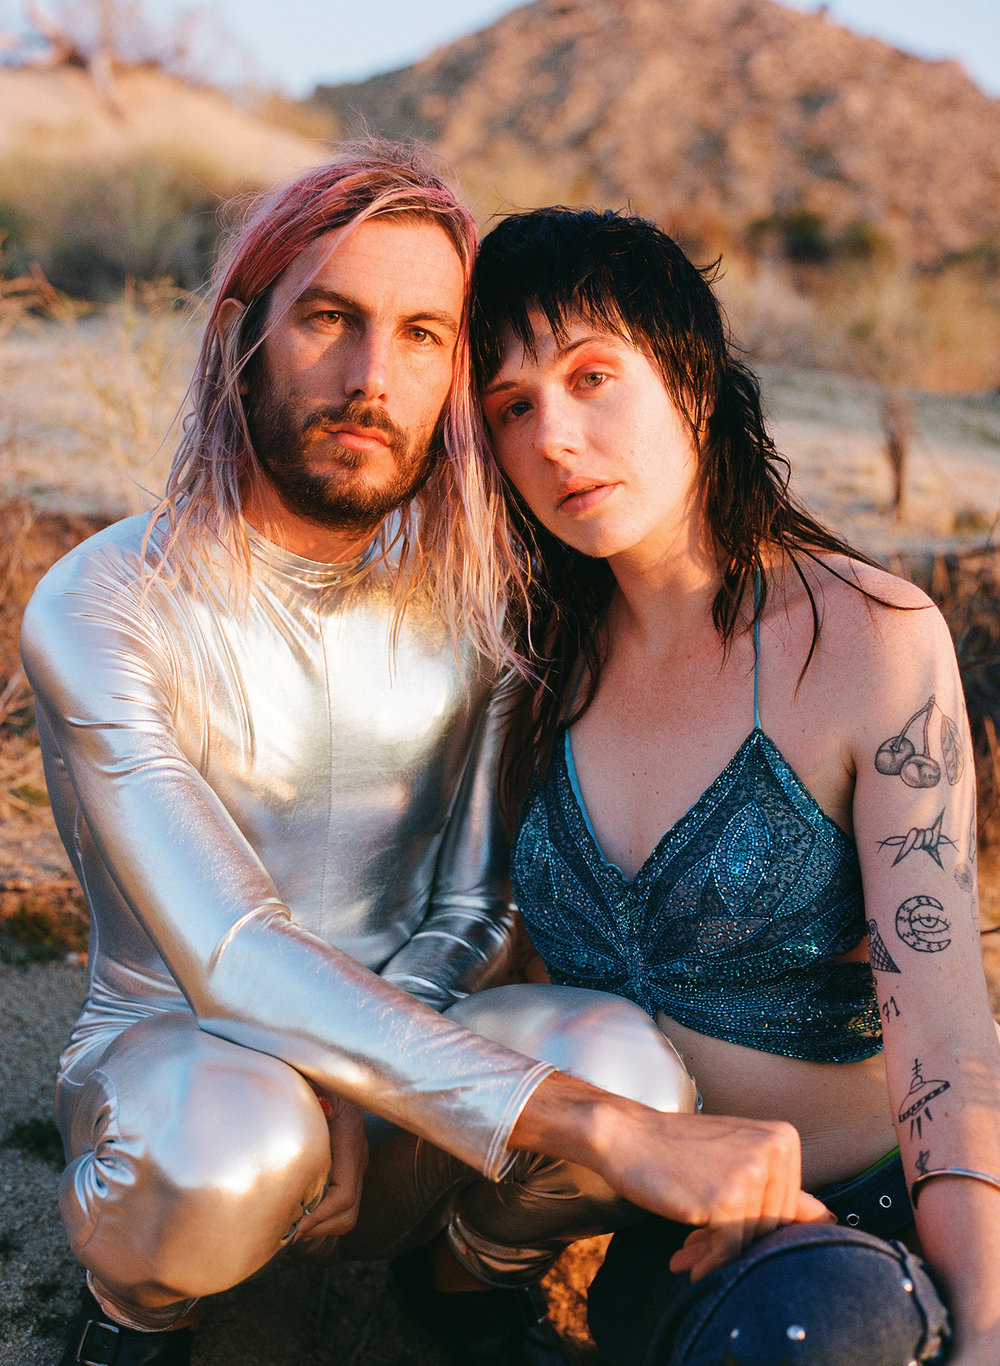 Jeffertitti & Dani photographed in Yucca Valley, CA in Mar. 2018.